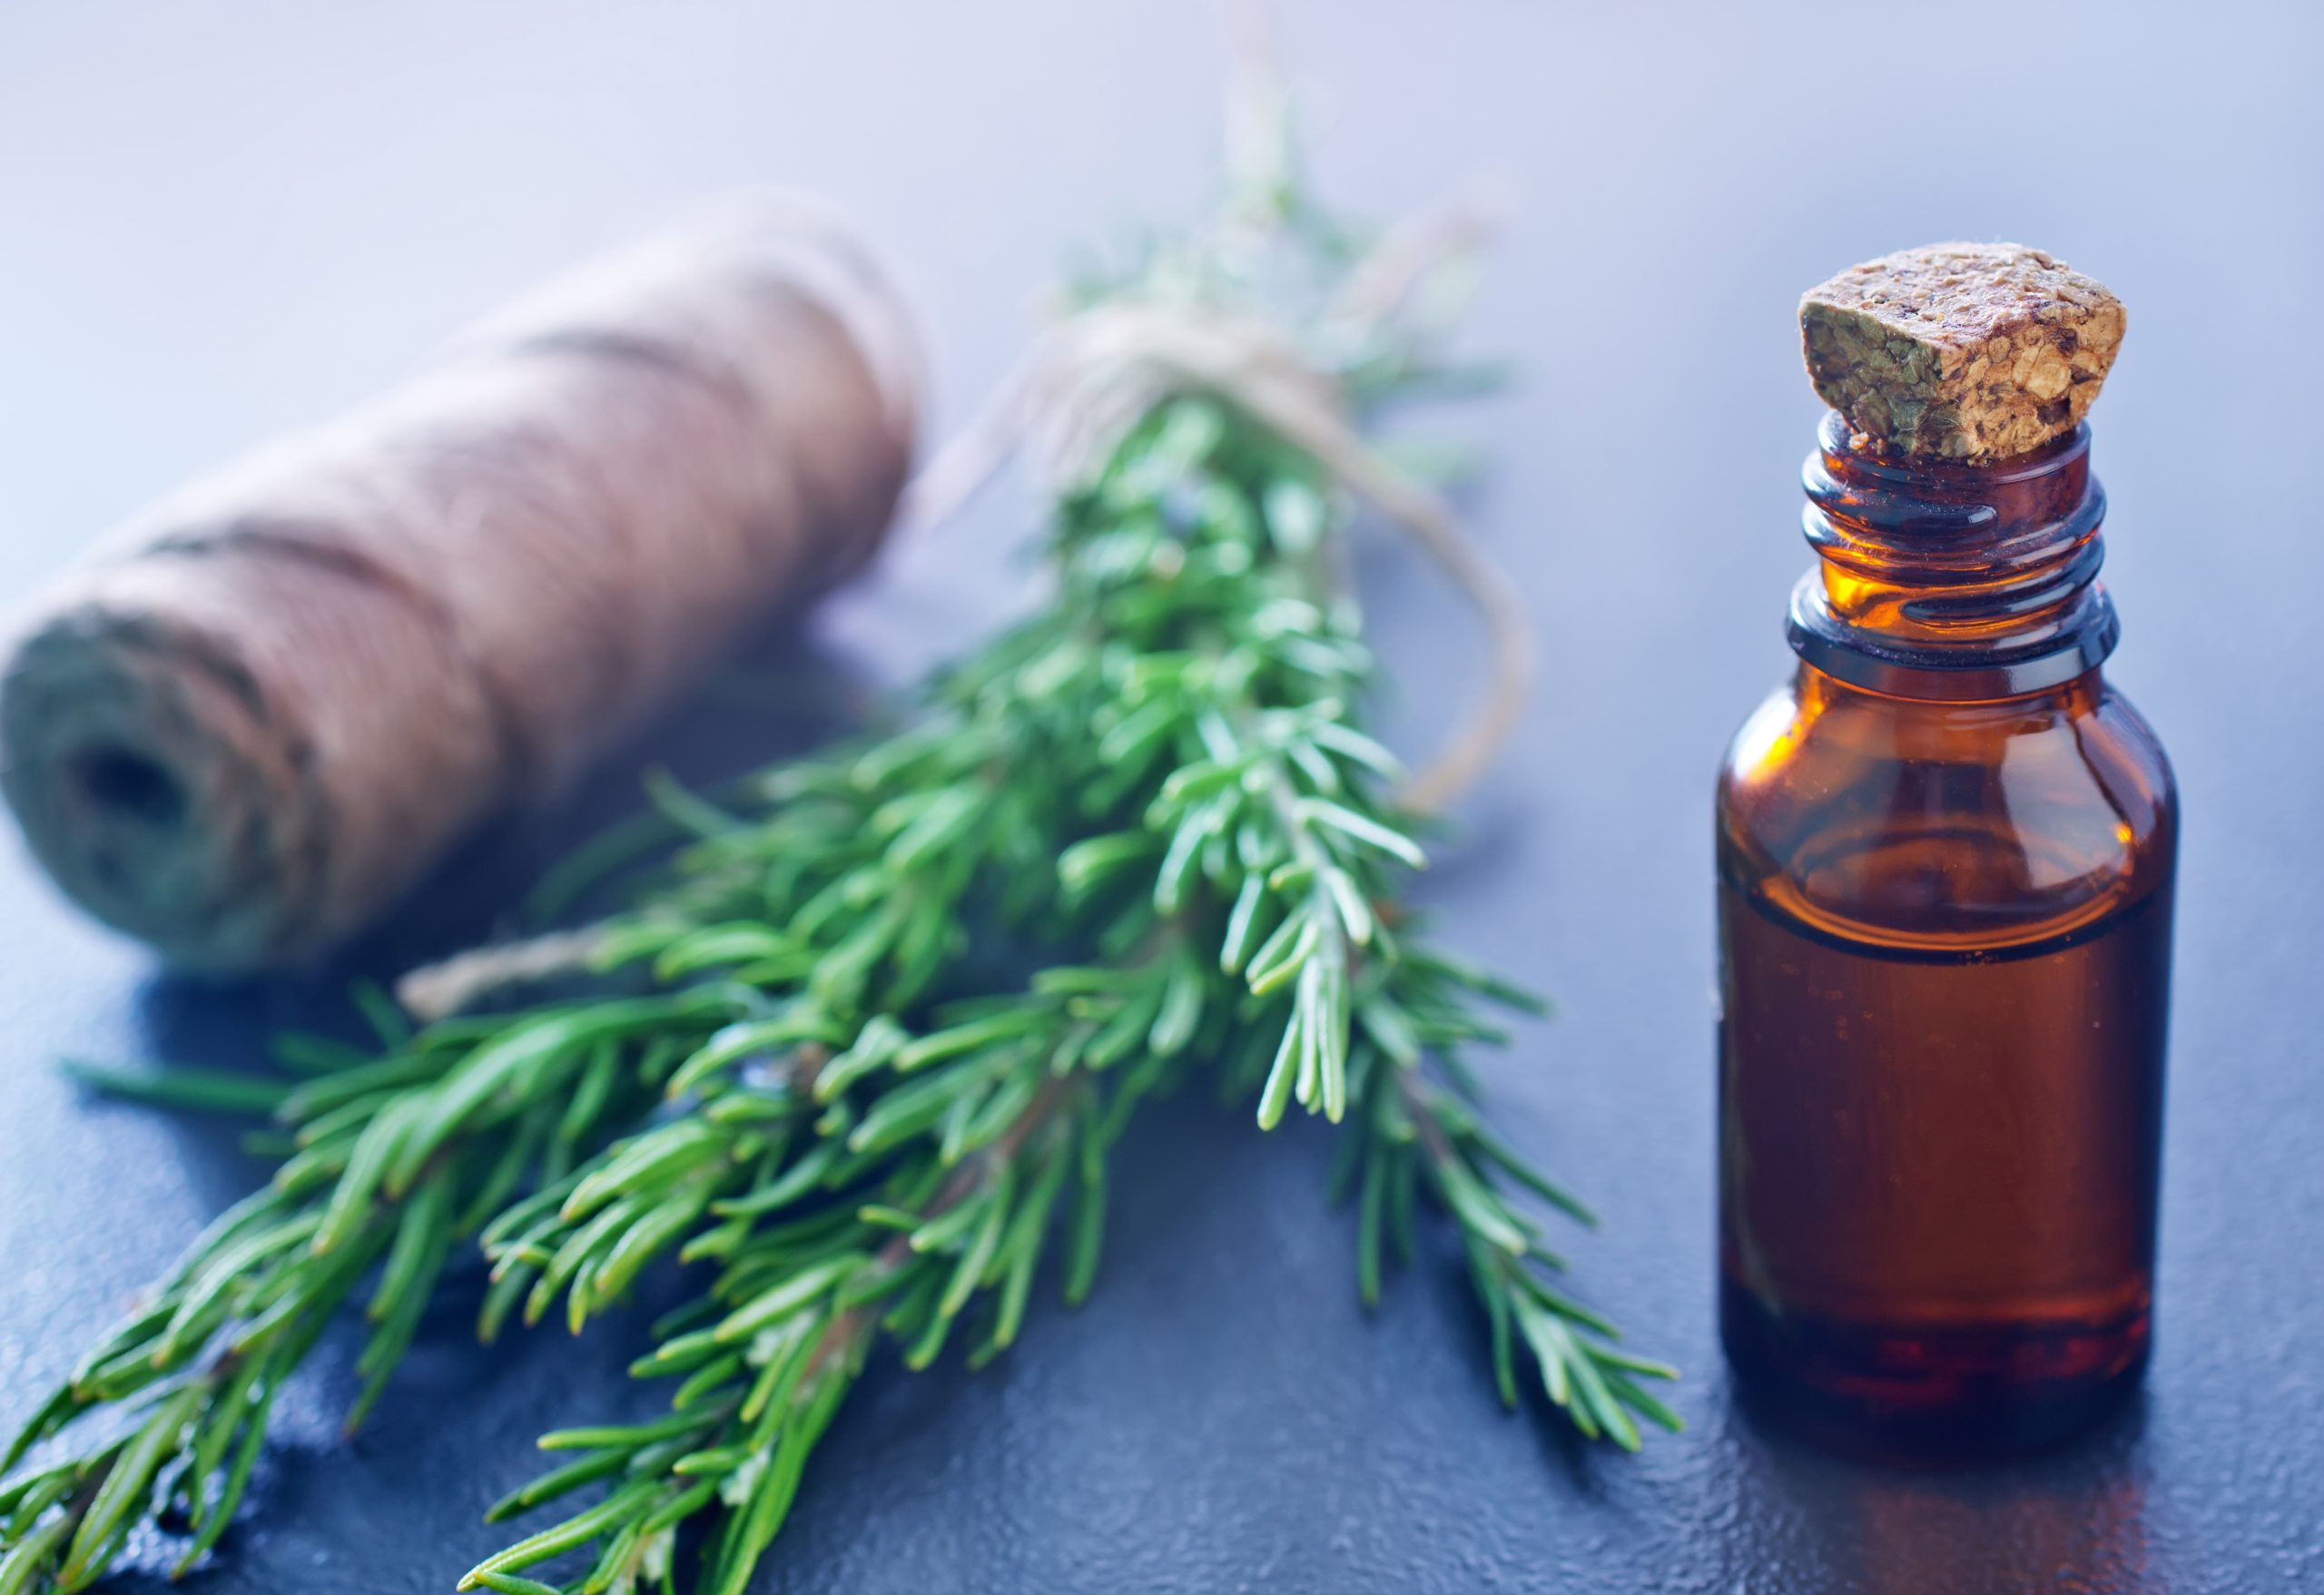 Rosemary Essential Oil - Top 7 Health Benefits